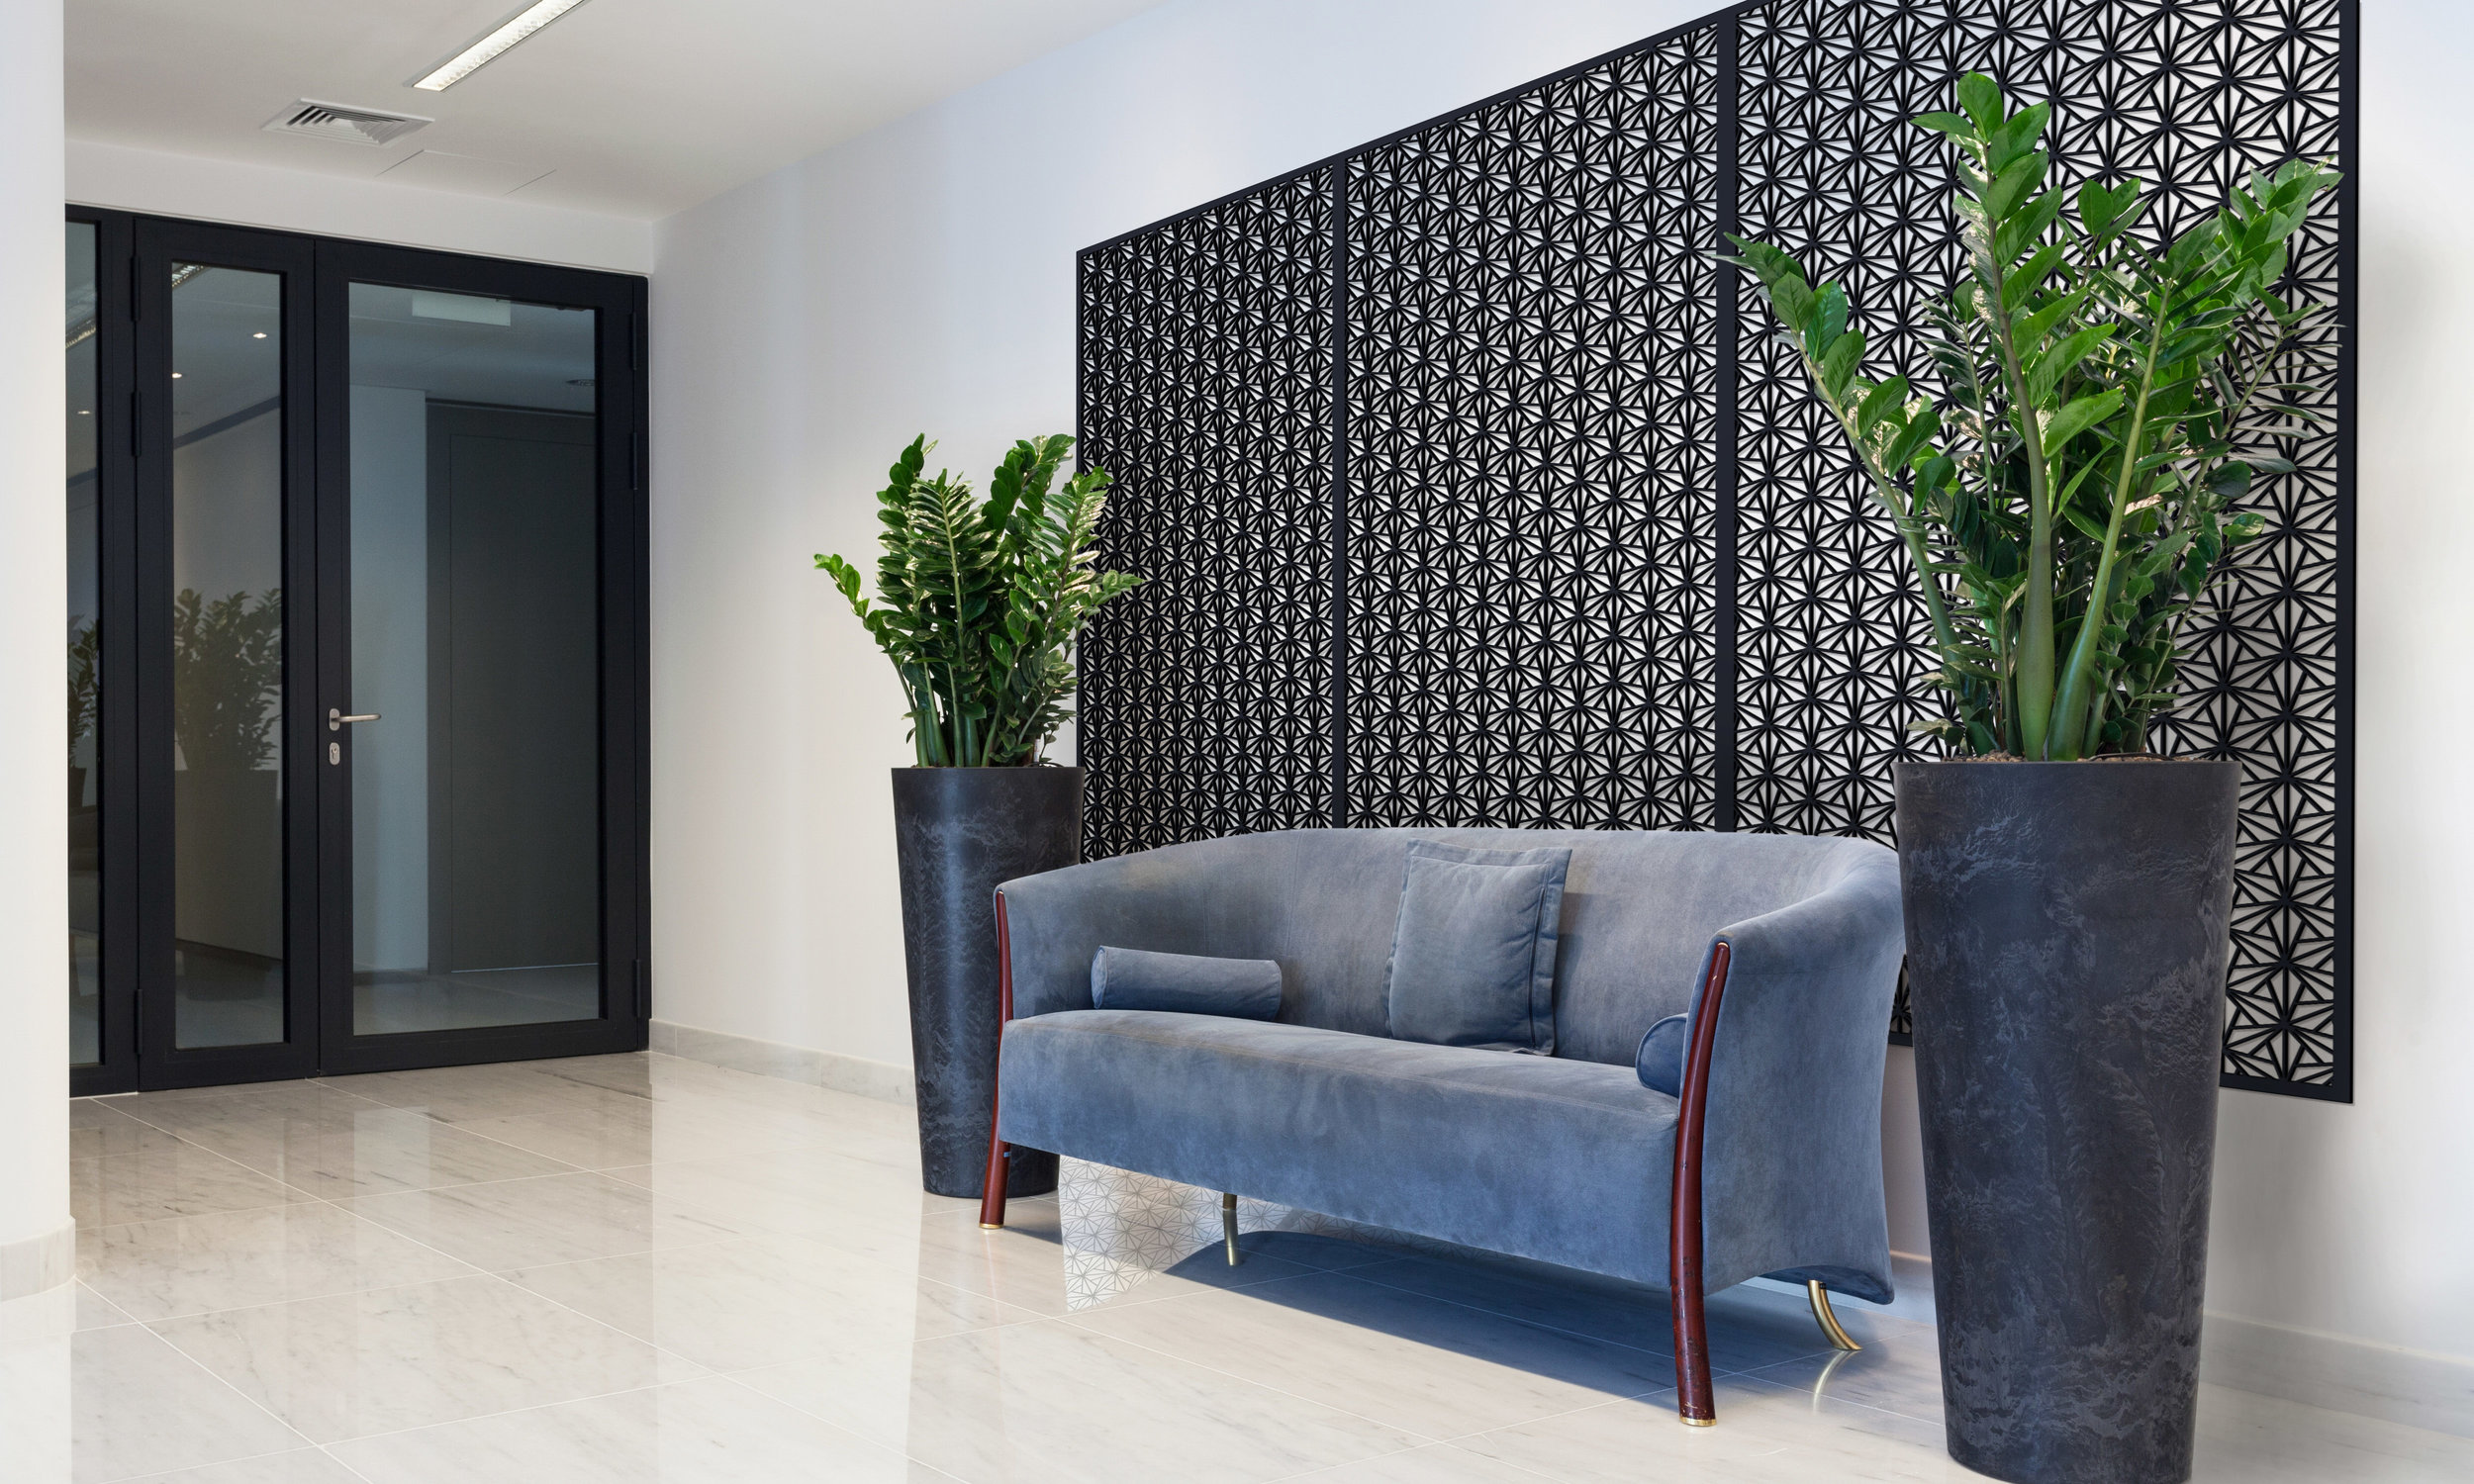 Installation Rendering B   Dragon Claw decorative office wall panel - painted